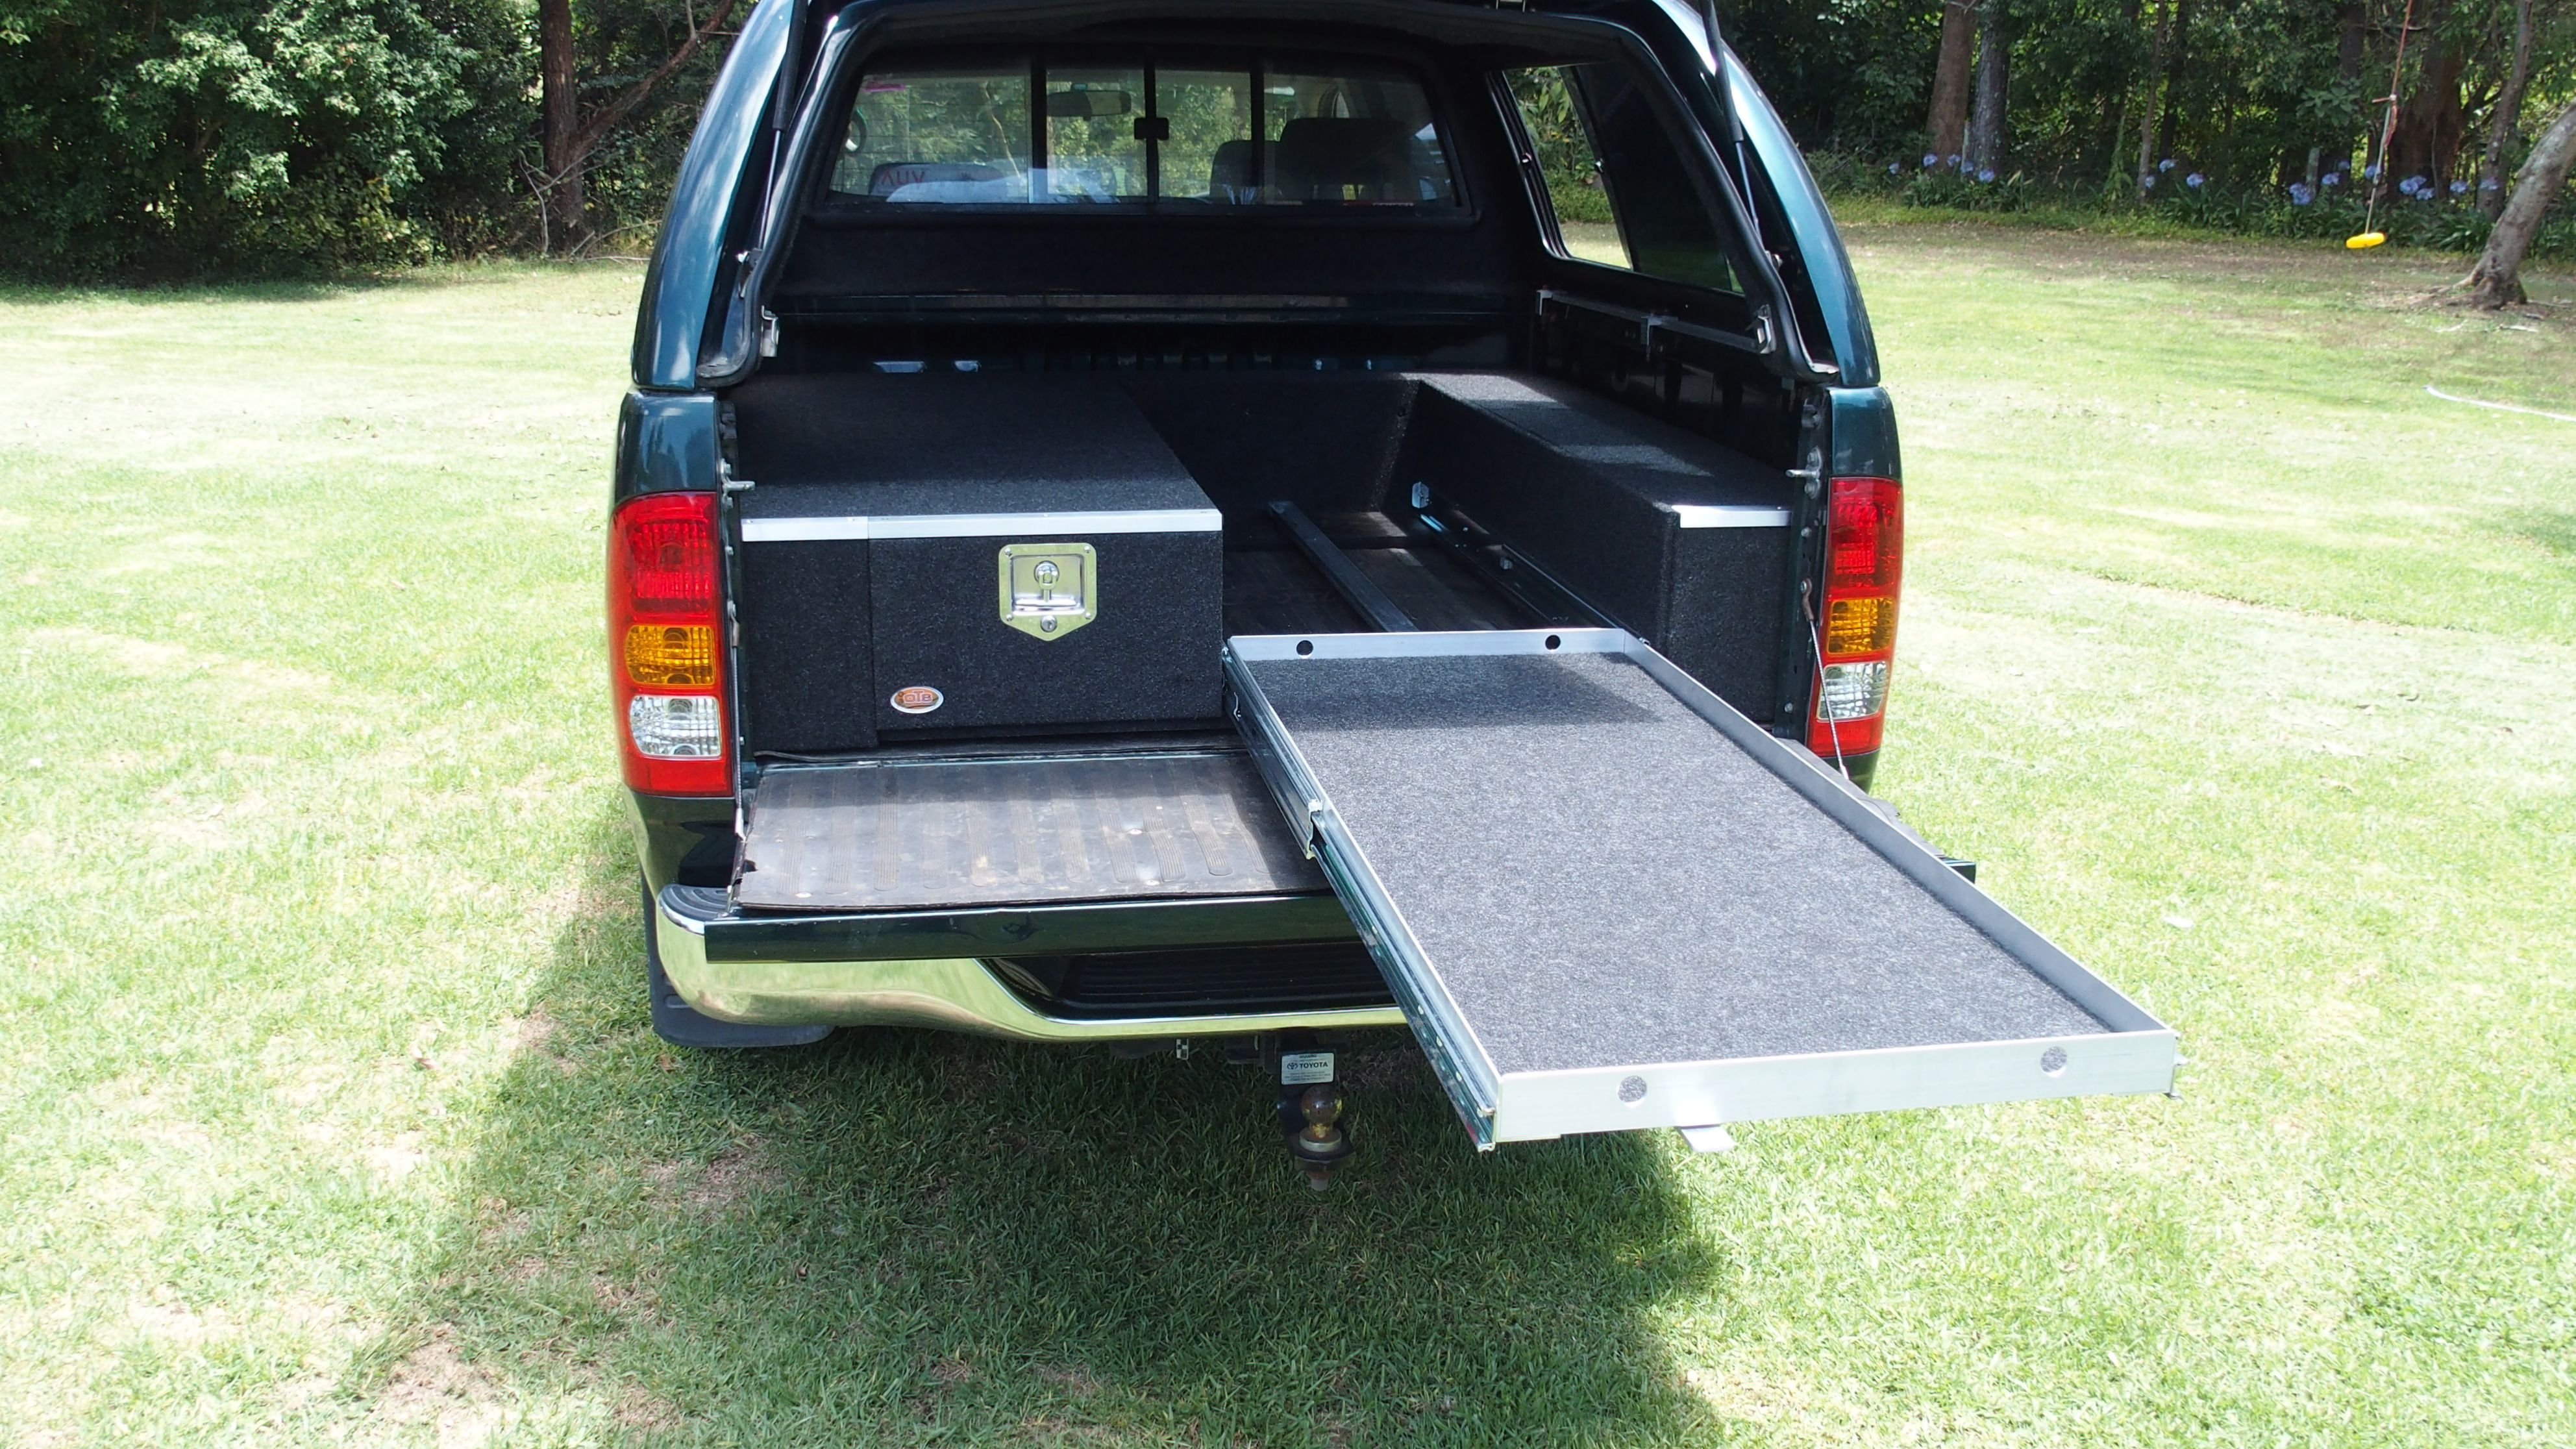 Showing The Full Length Fridge Slide In A Toyota Hilux Toyota Hilux Hilux Camper 4wd